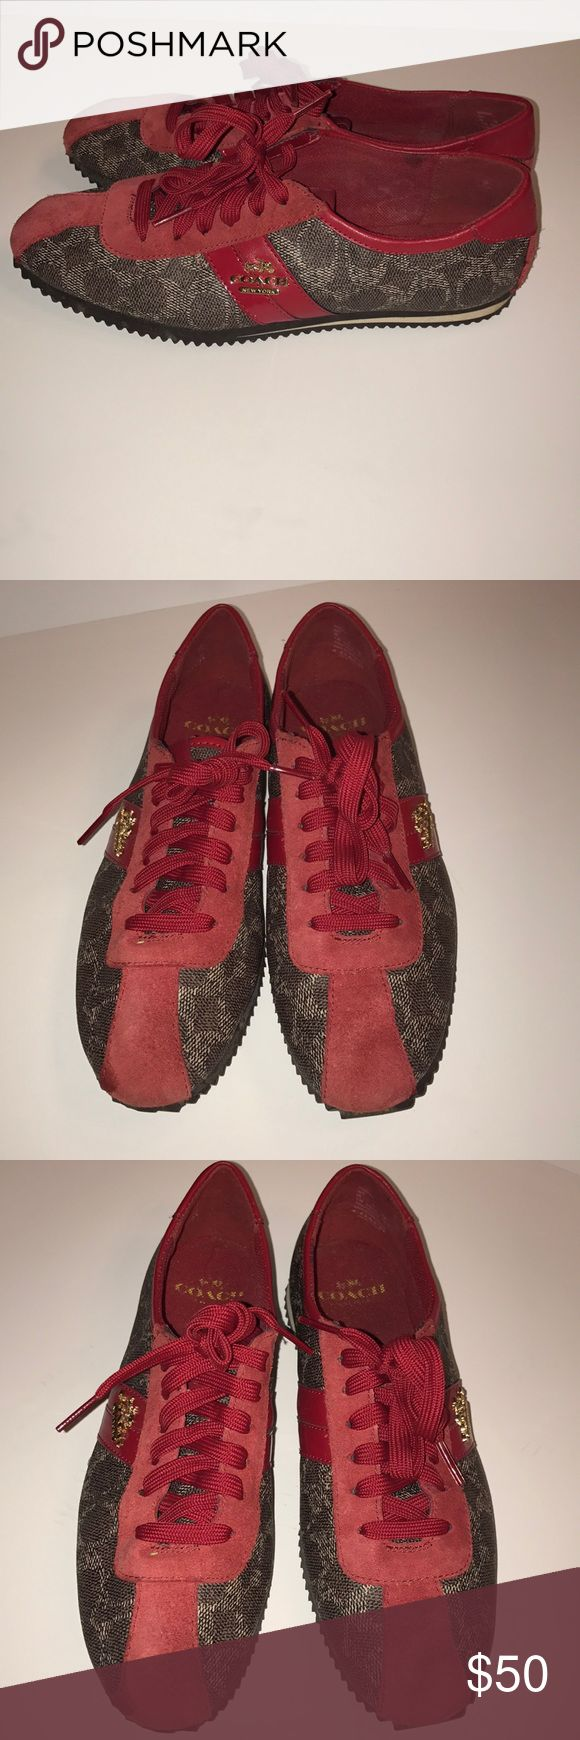 Red and brown Coach sneakers Red and brown Coach sneakers Coach Shoes Sneakers